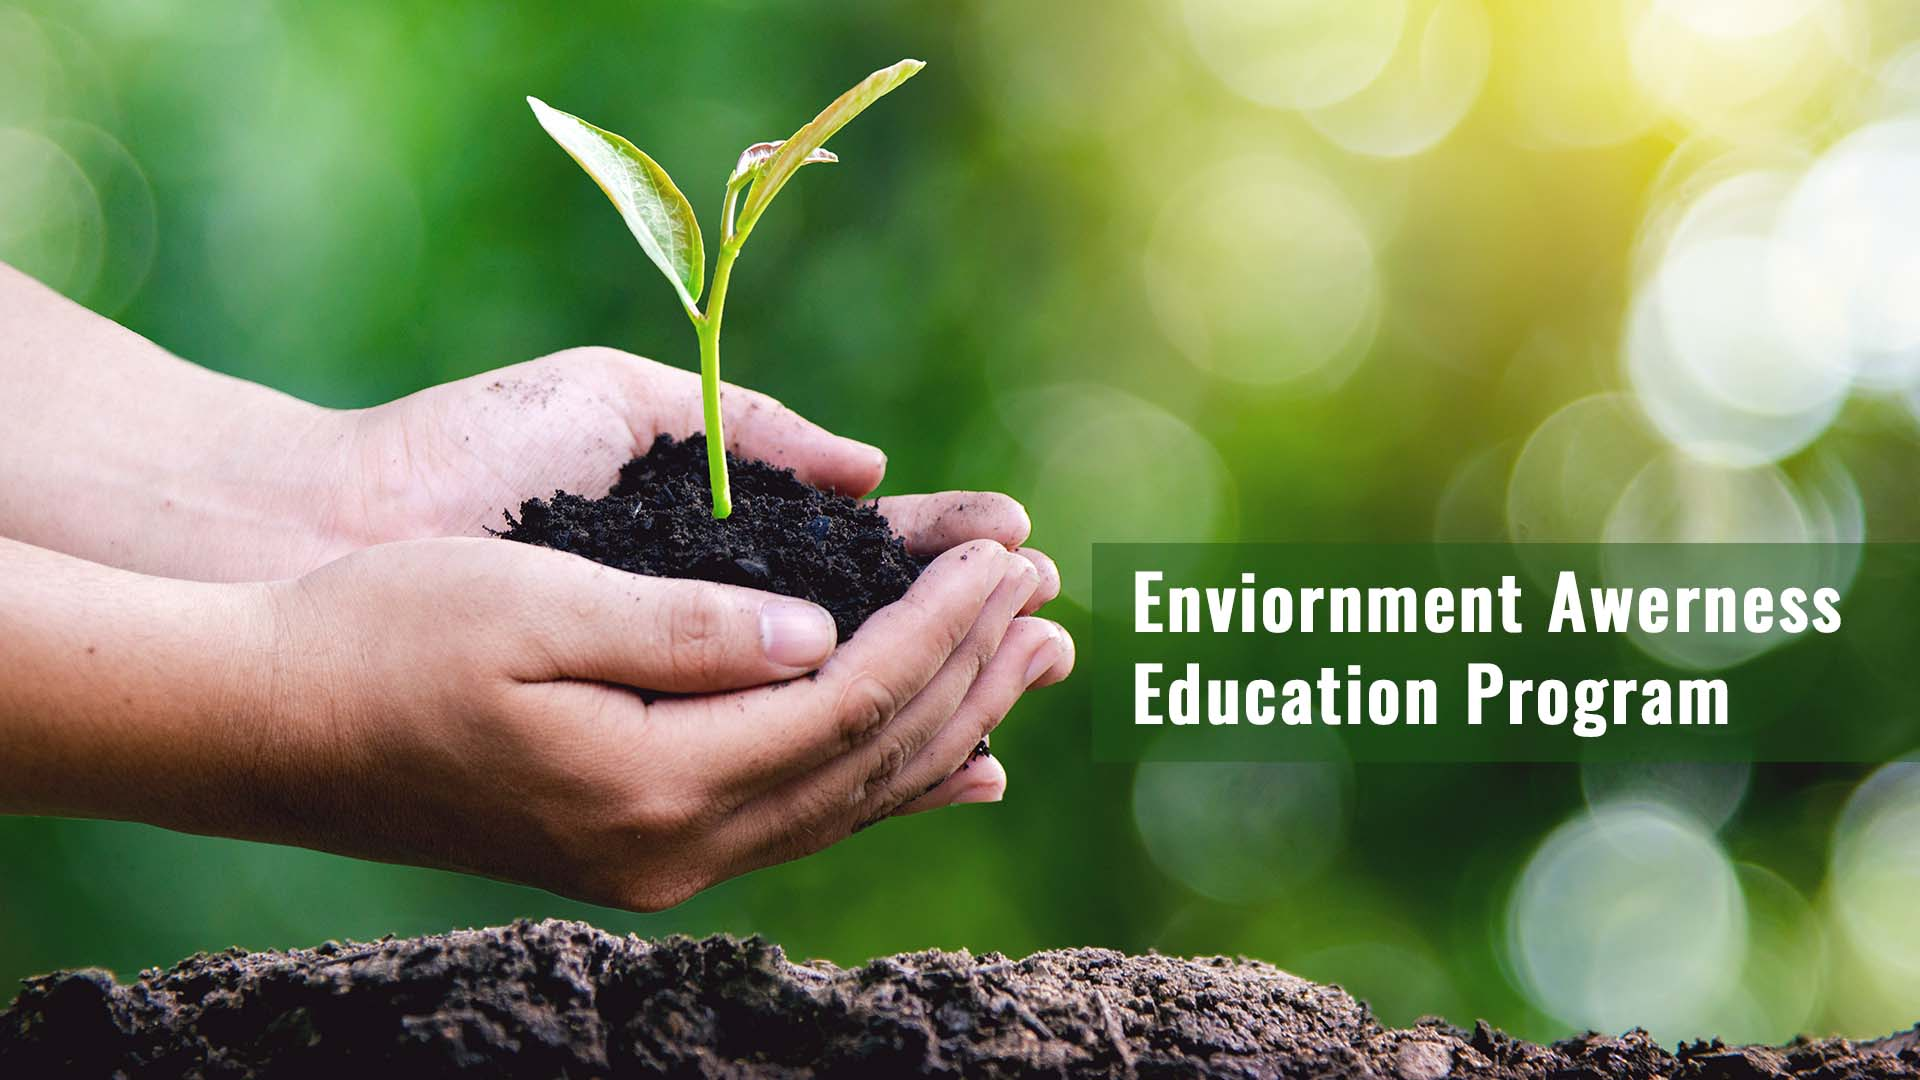 Environment Awareness Education Program